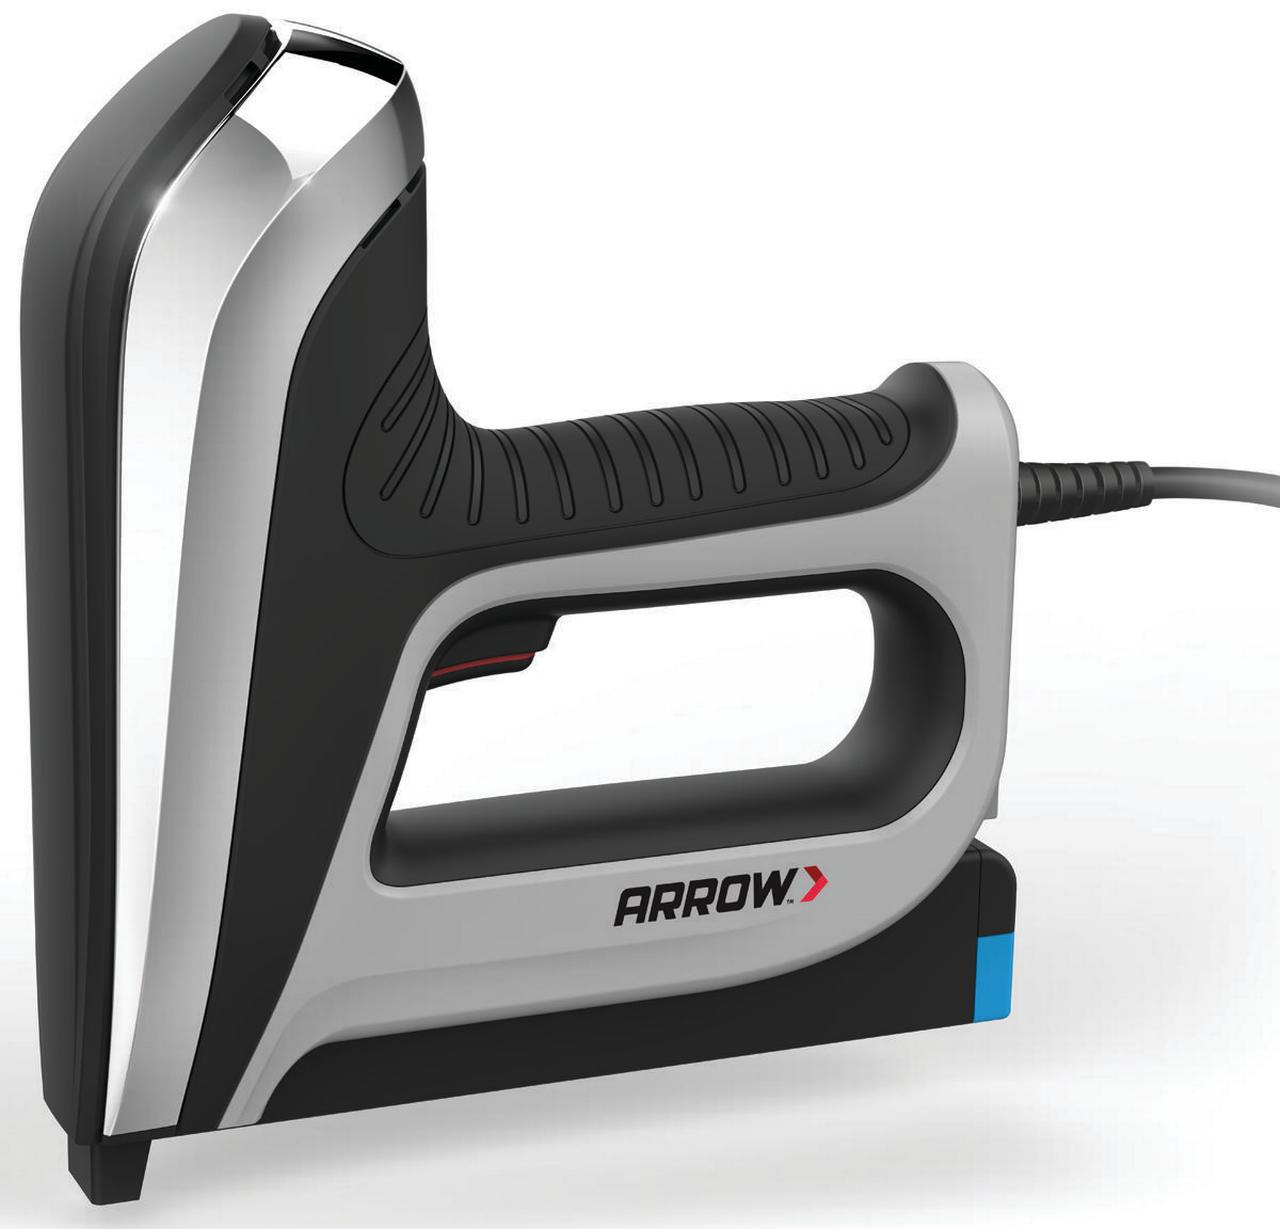 Arrow Fastener T50AC T50 Pro Electric Staple And Brad Nail Gun by Arrow Fastener Co